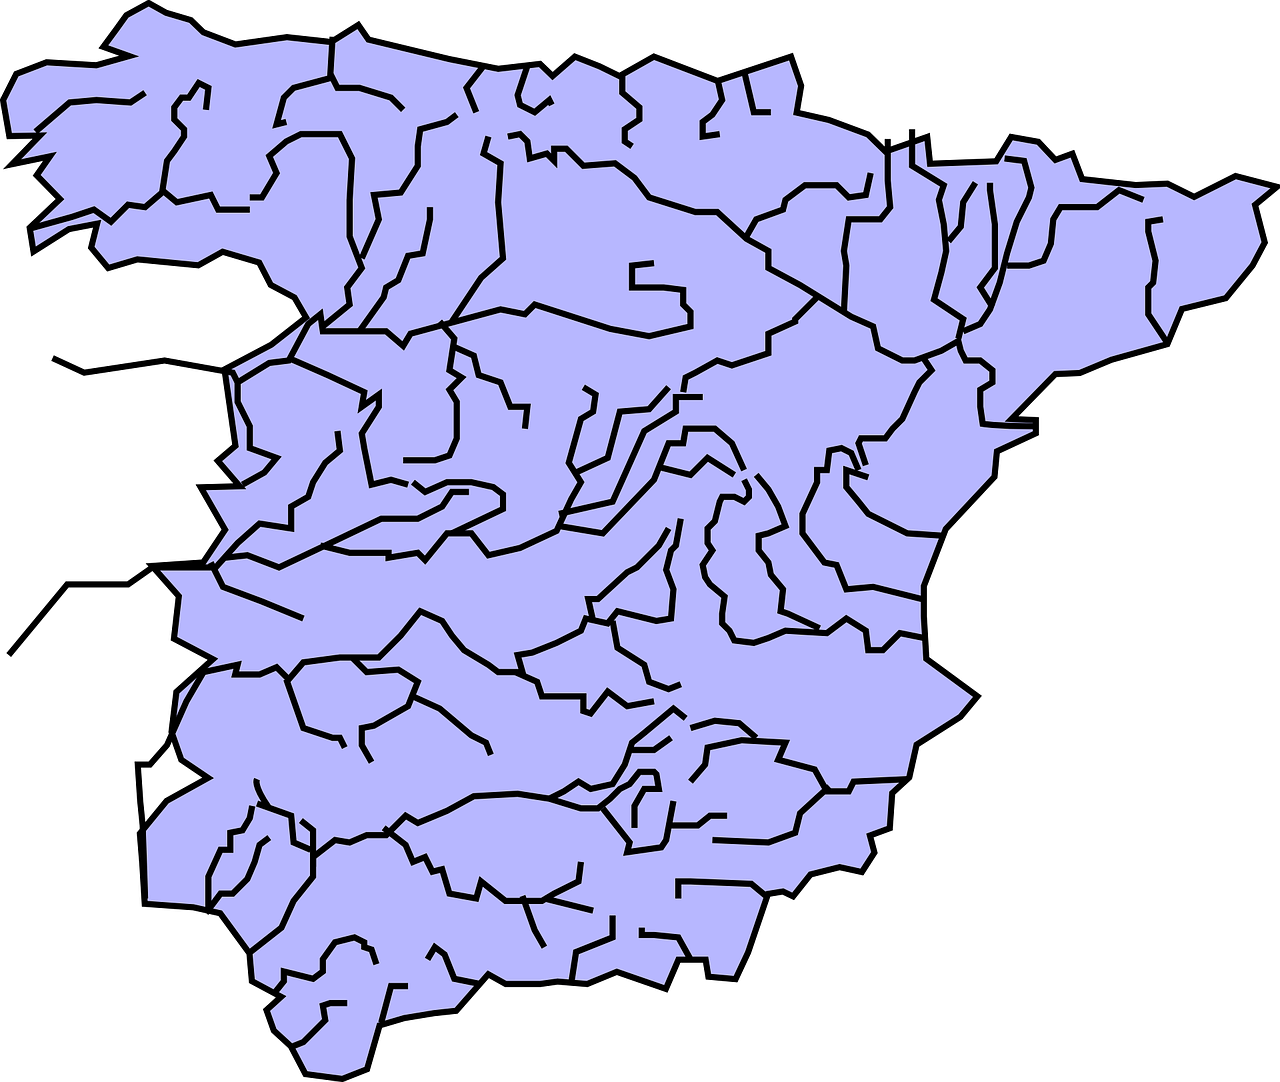 Picture of: Spain Geography Rivers Free Vector Graphic On Pixabay